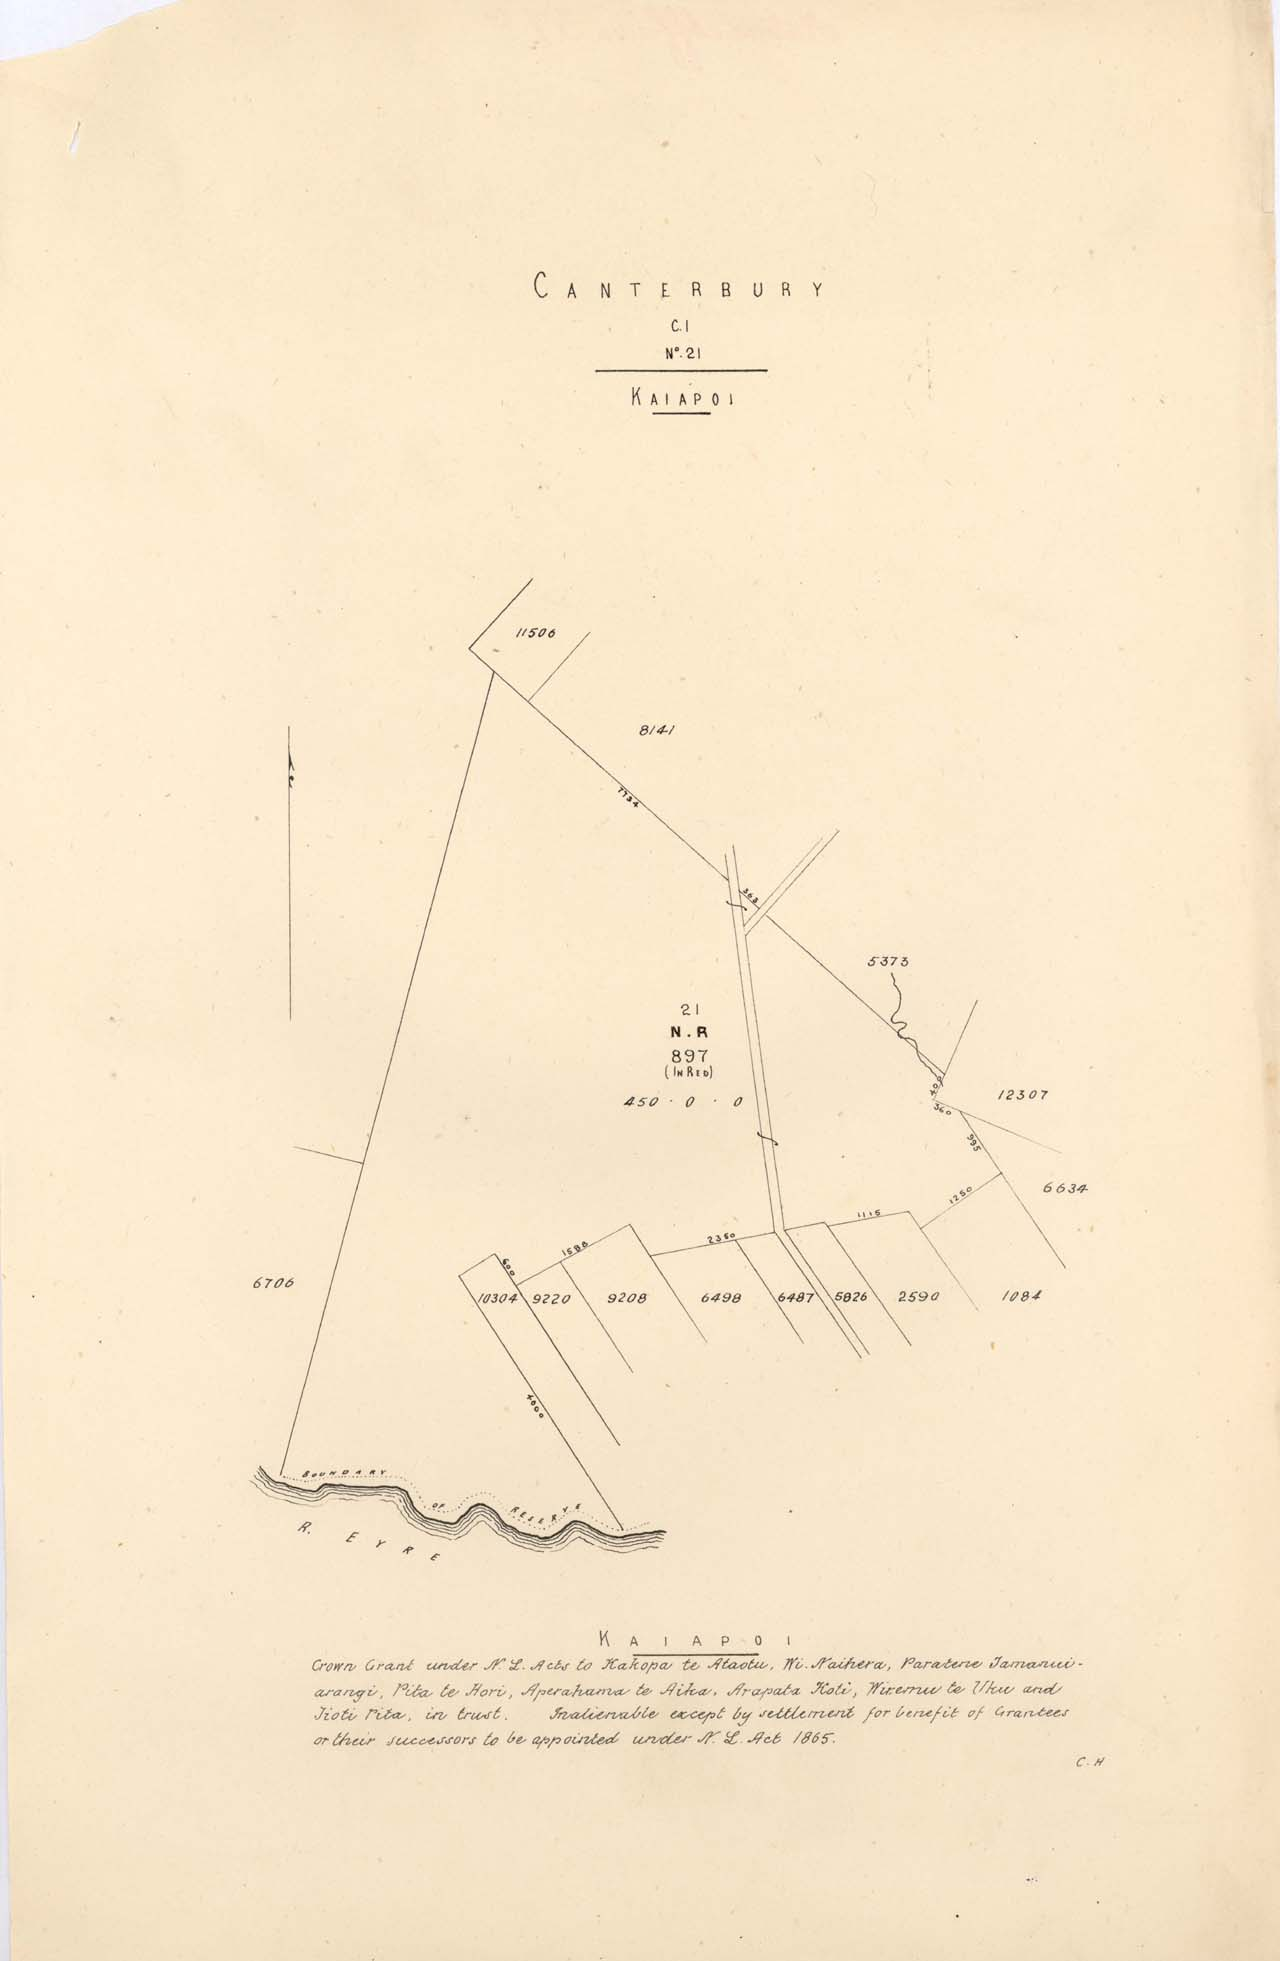 Plan showing plots in Kaiapoi